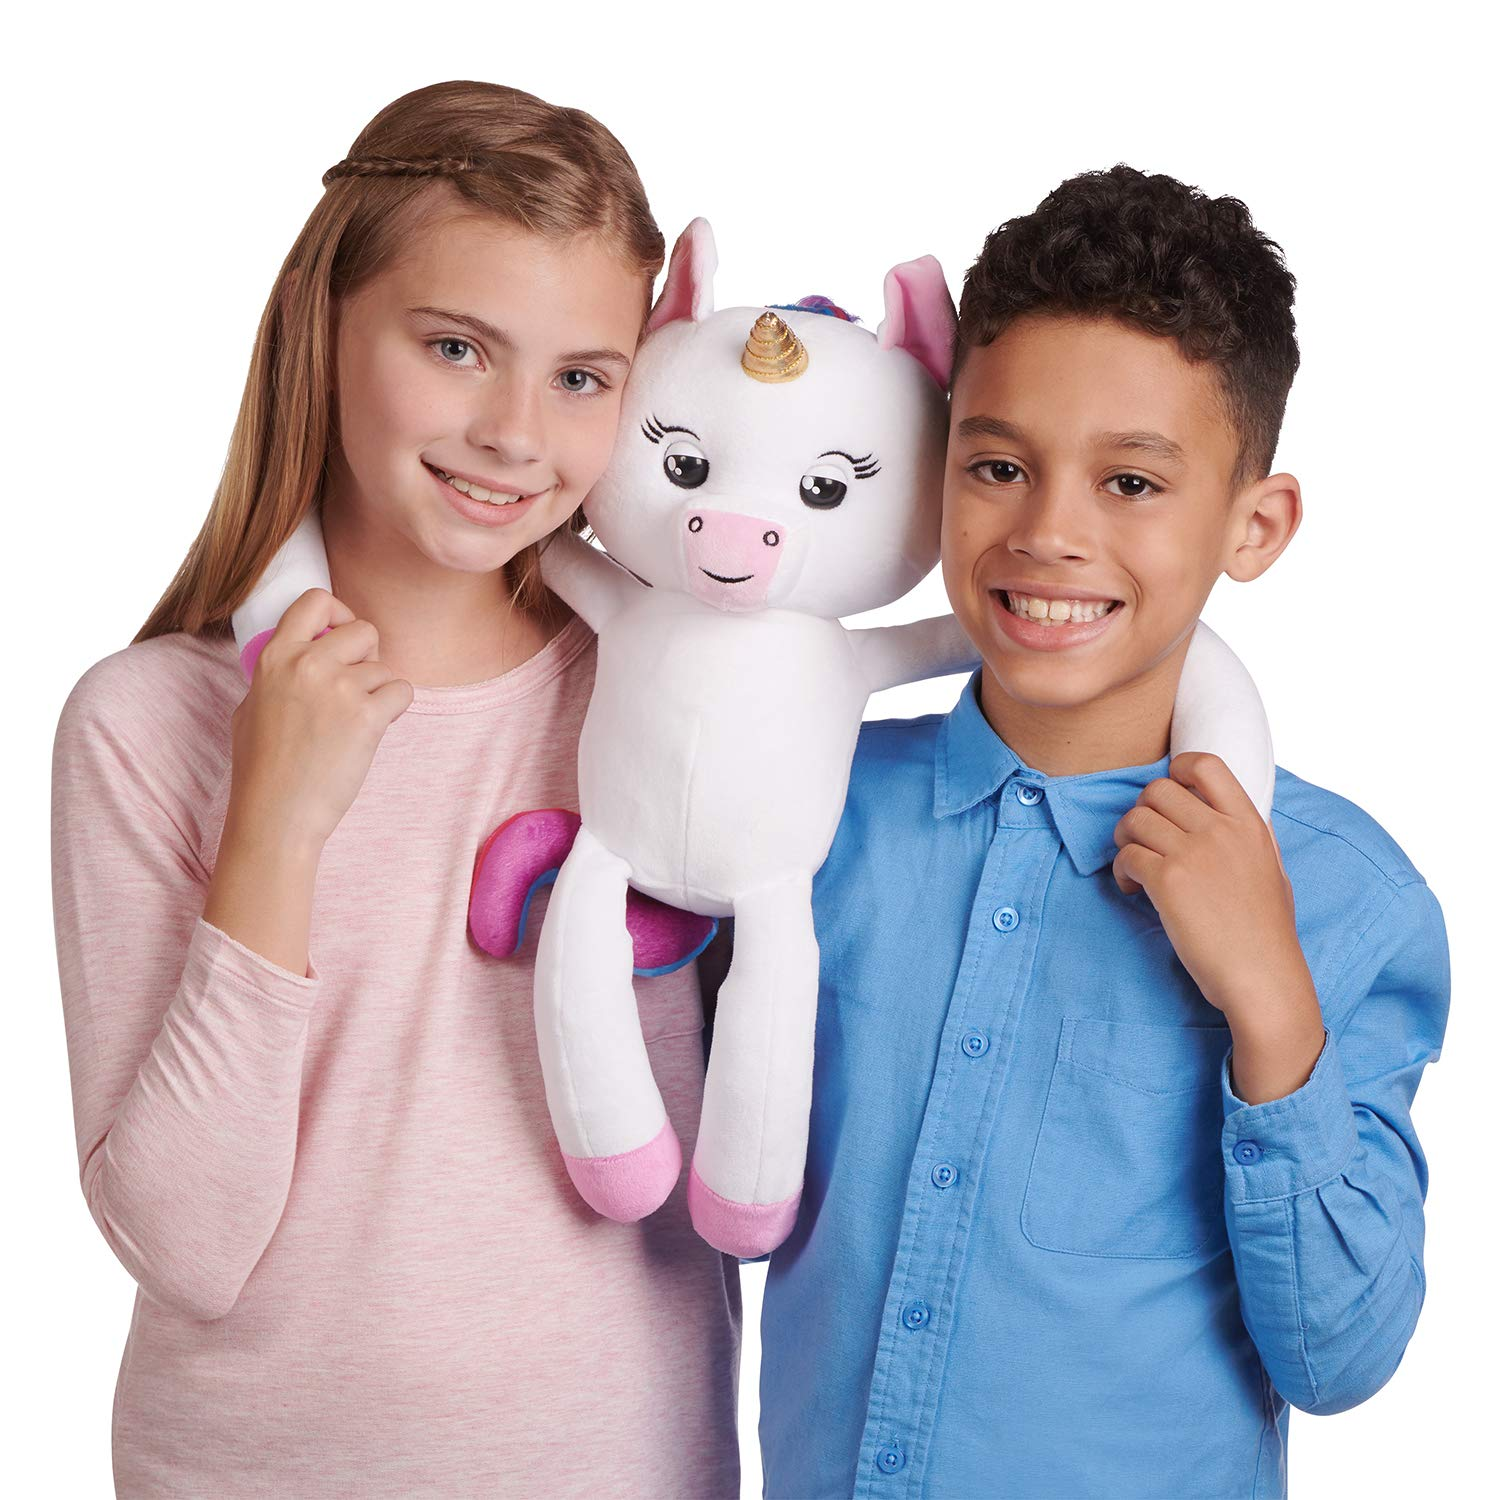 Plush Unicorn Fingerlings WowWee